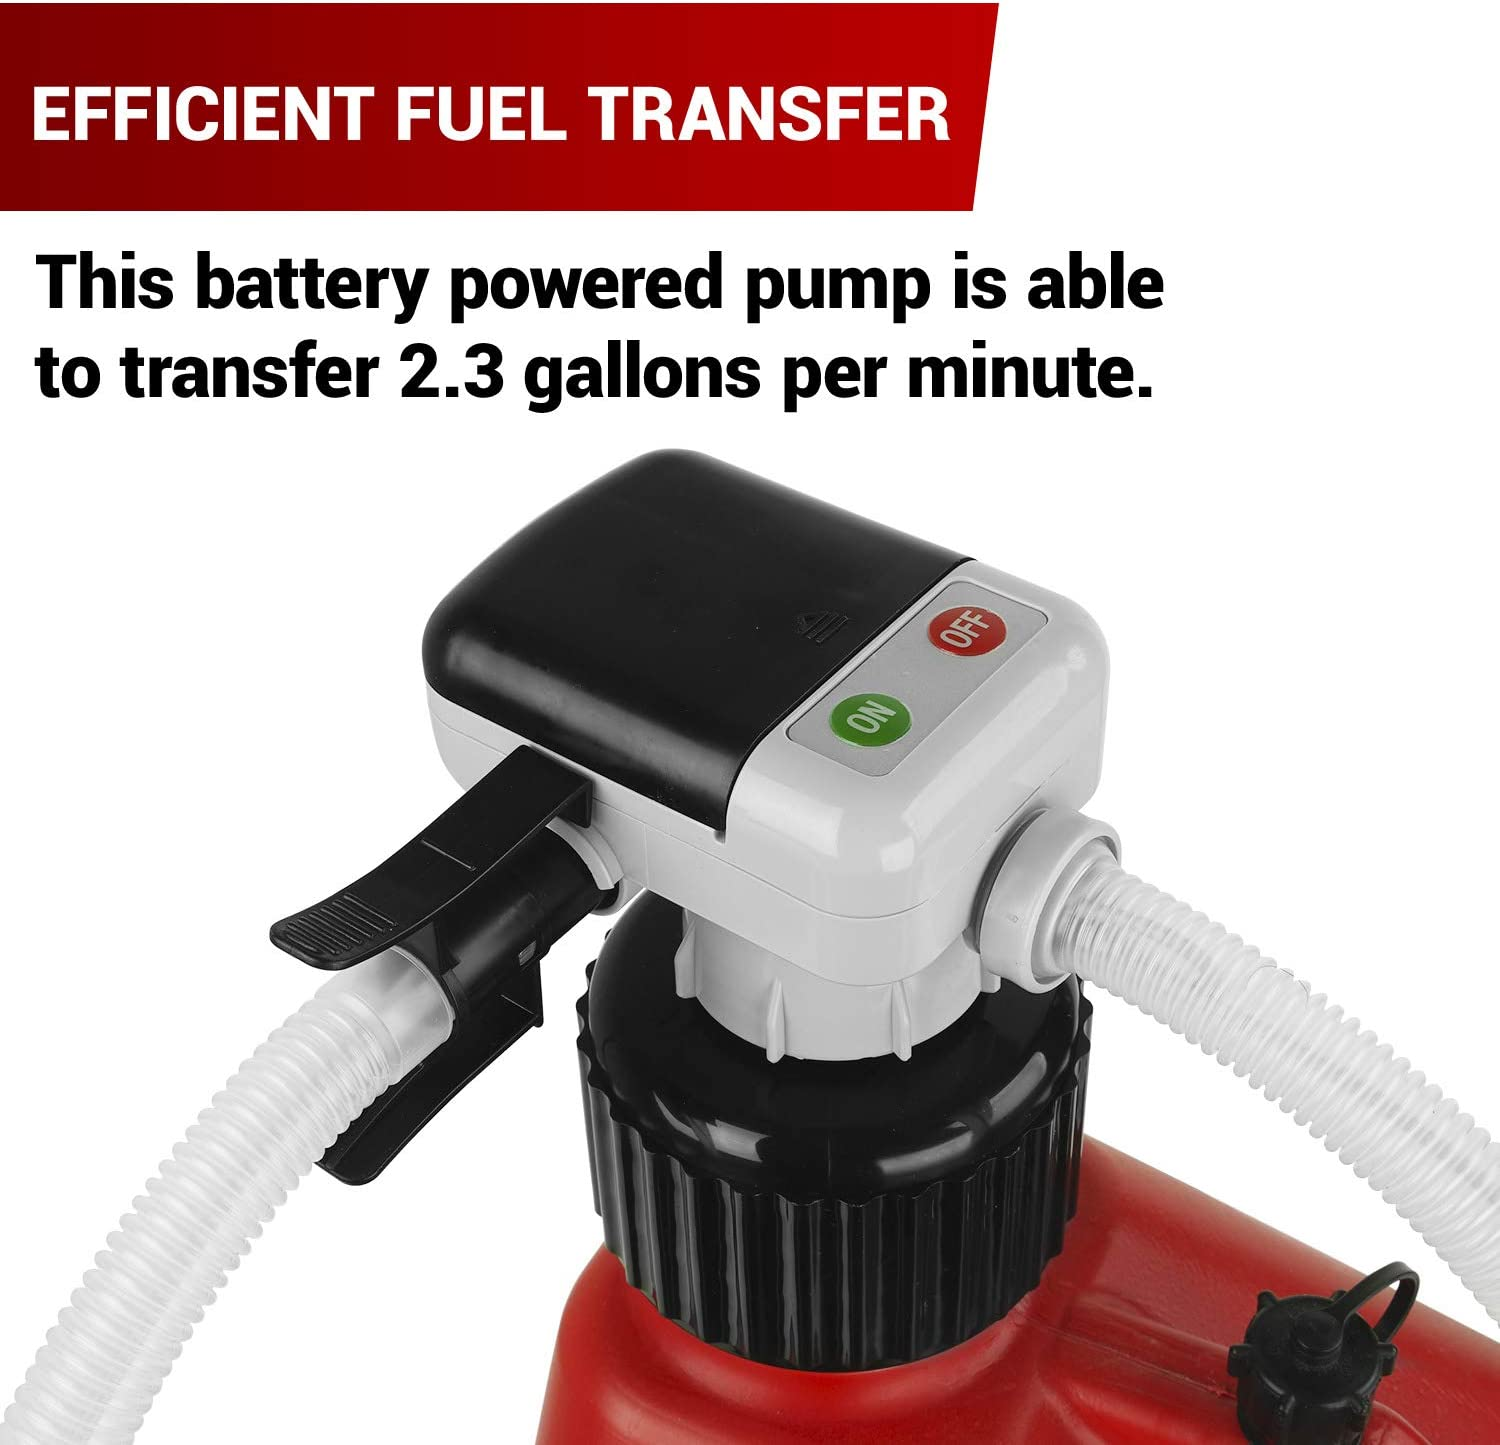 TRFA01-XL-CH 4X AA Battery Fuel Trasfer Pump for Ethanol Methanol DEF Brake Cleaner 2.3 GPM Transfer Pump Fits Most North American Gas Cans TERA PUMP